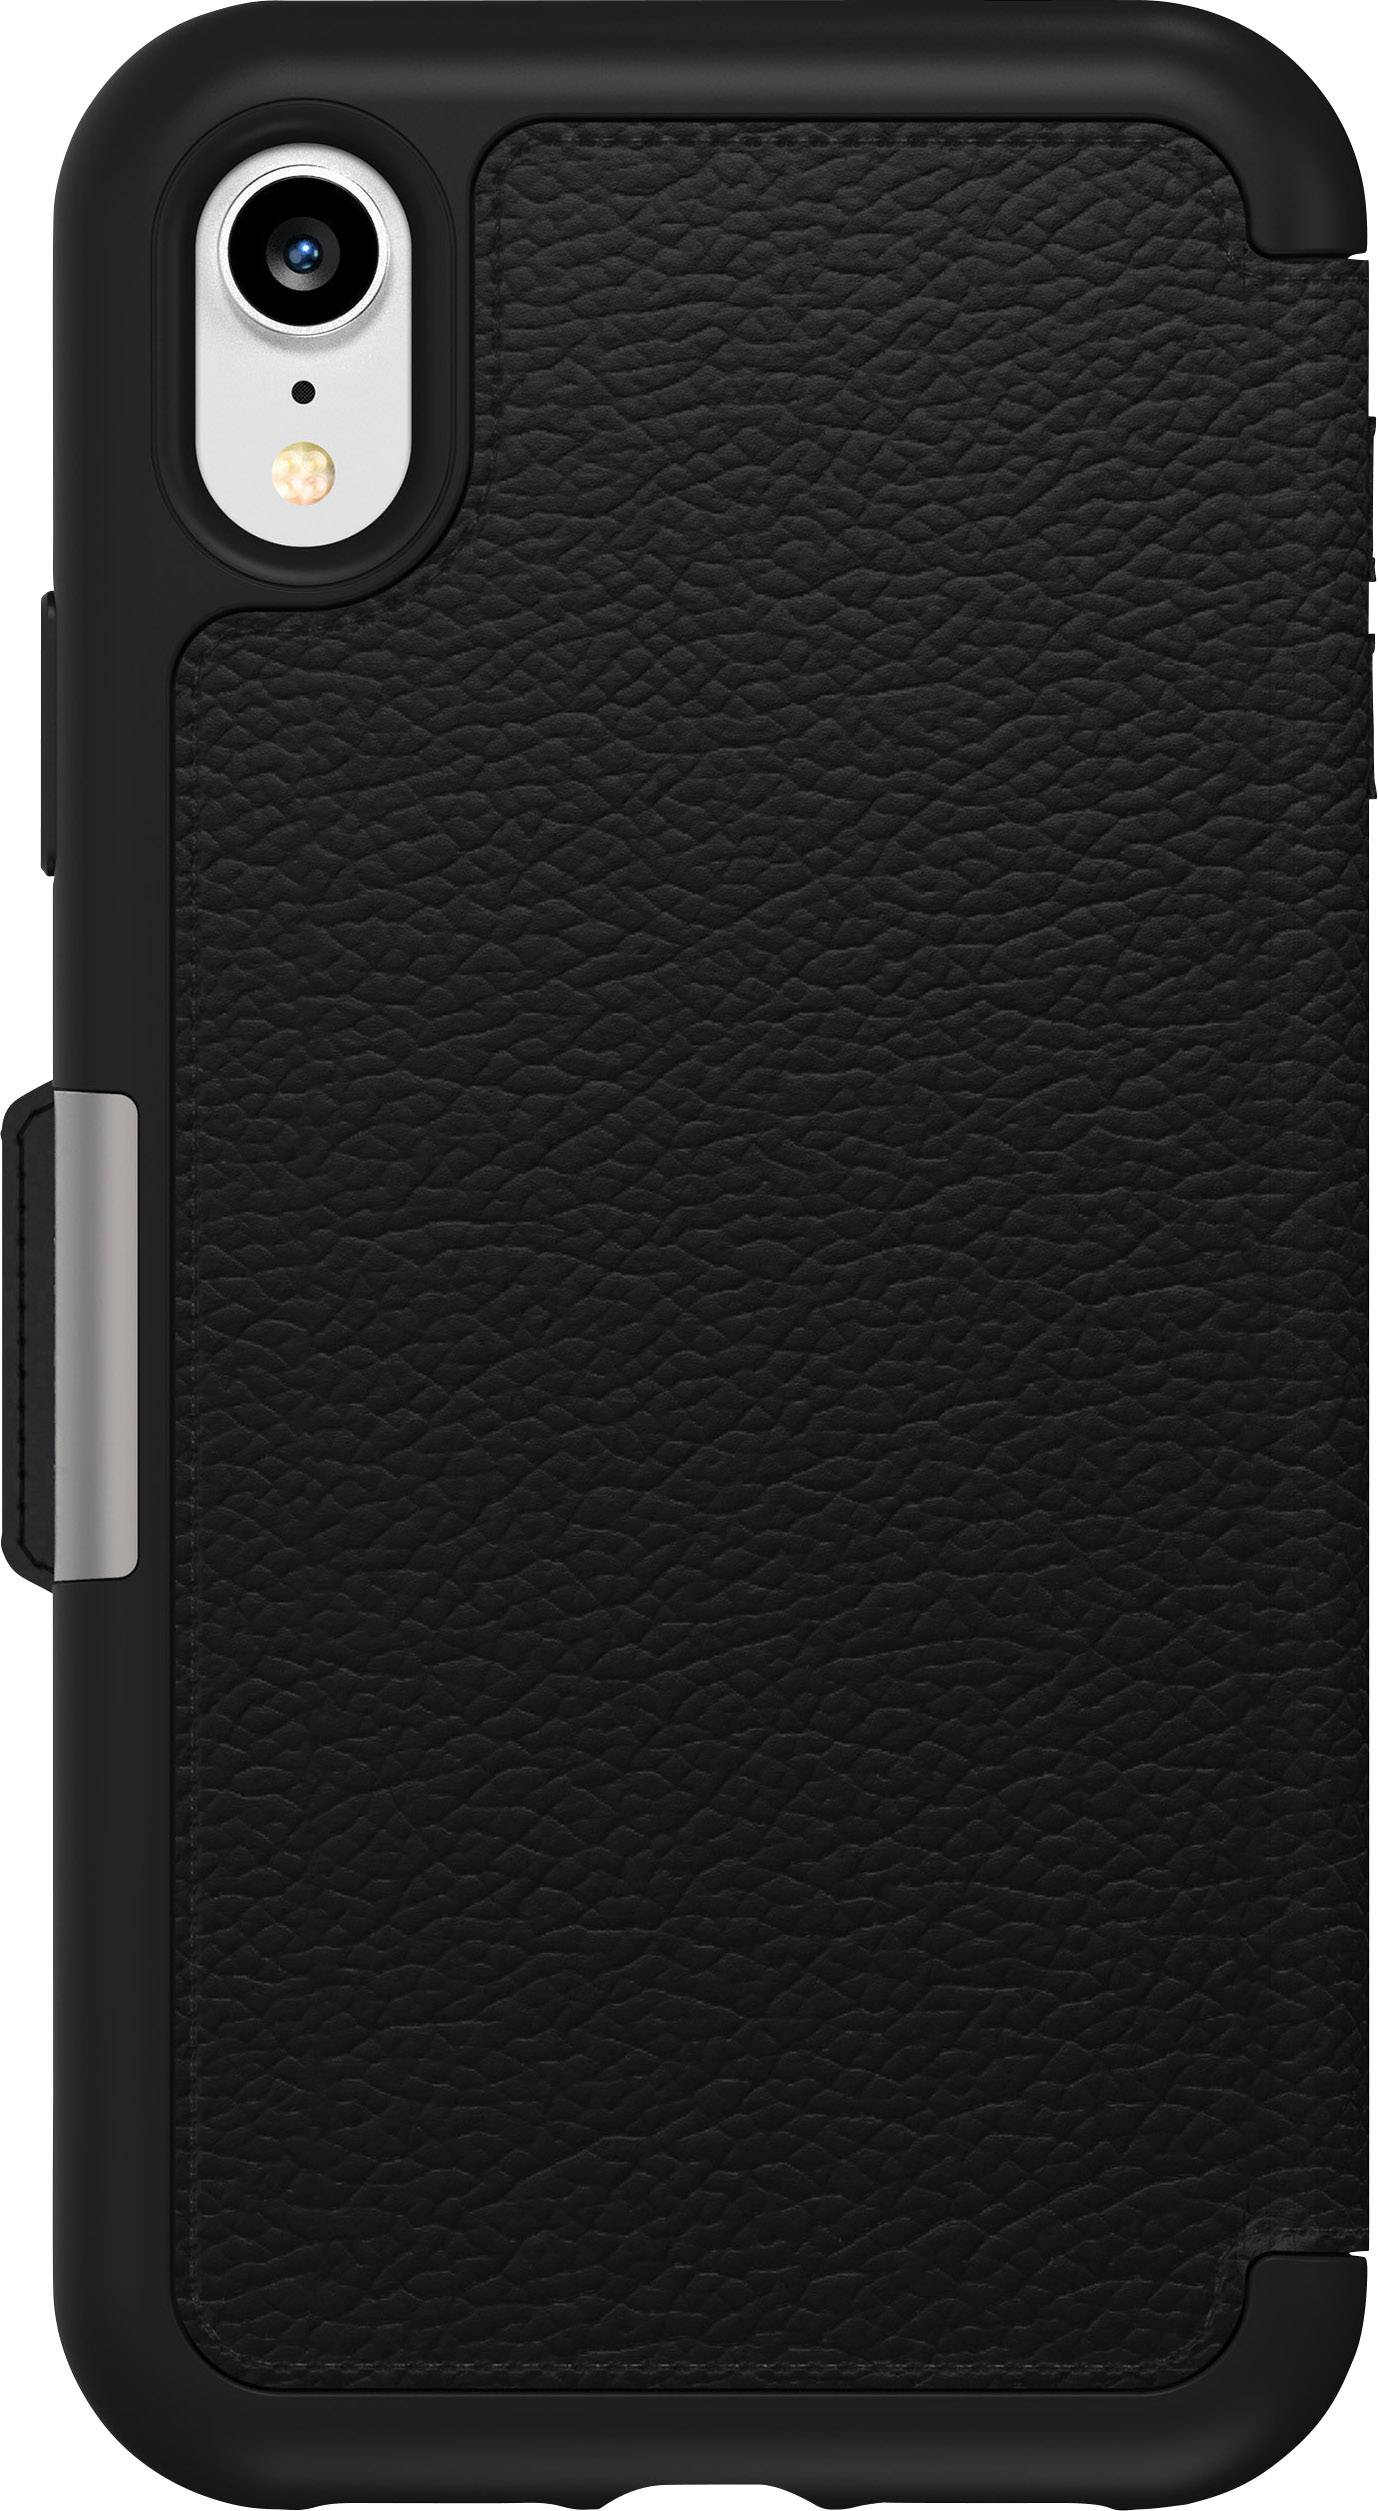 buy popular d38a7 fdd0d Otterbox Strada iPhone flip case Compatible with (mobile phones ...